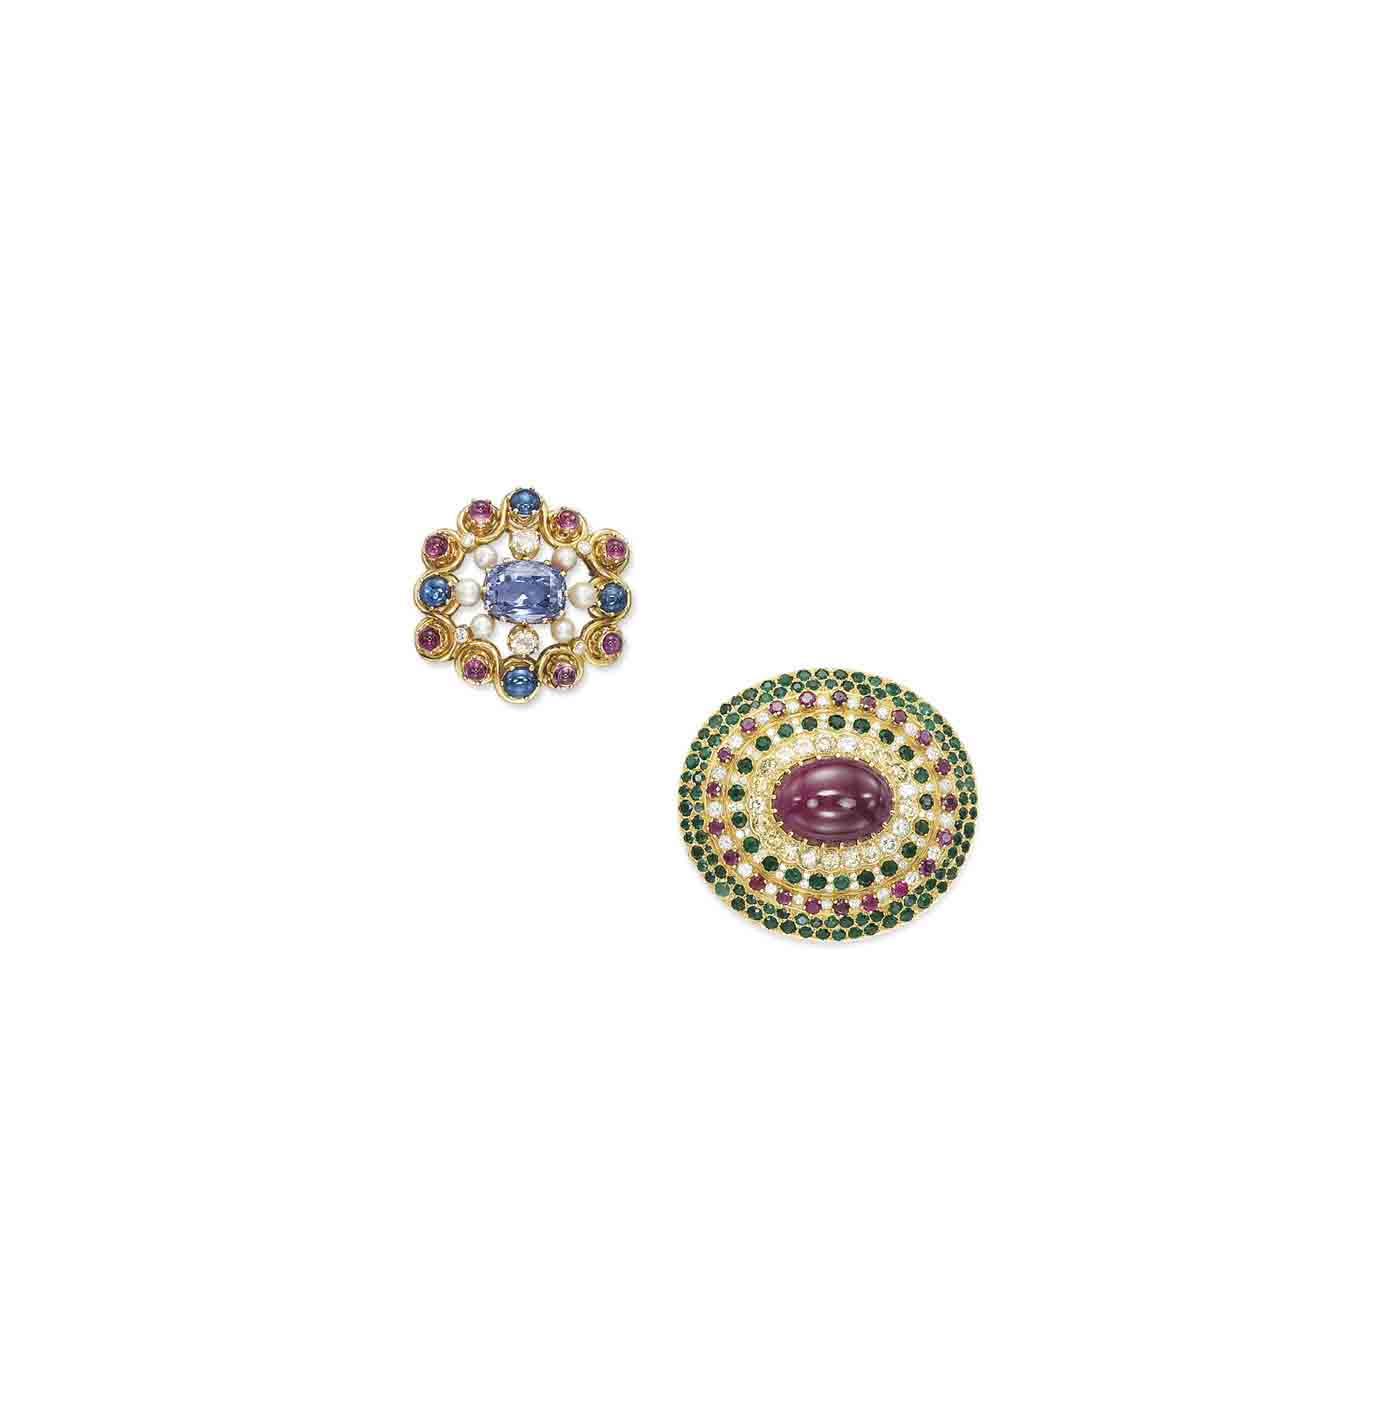 TWO MULTI-GEM AND DIAMOND BROOCHES